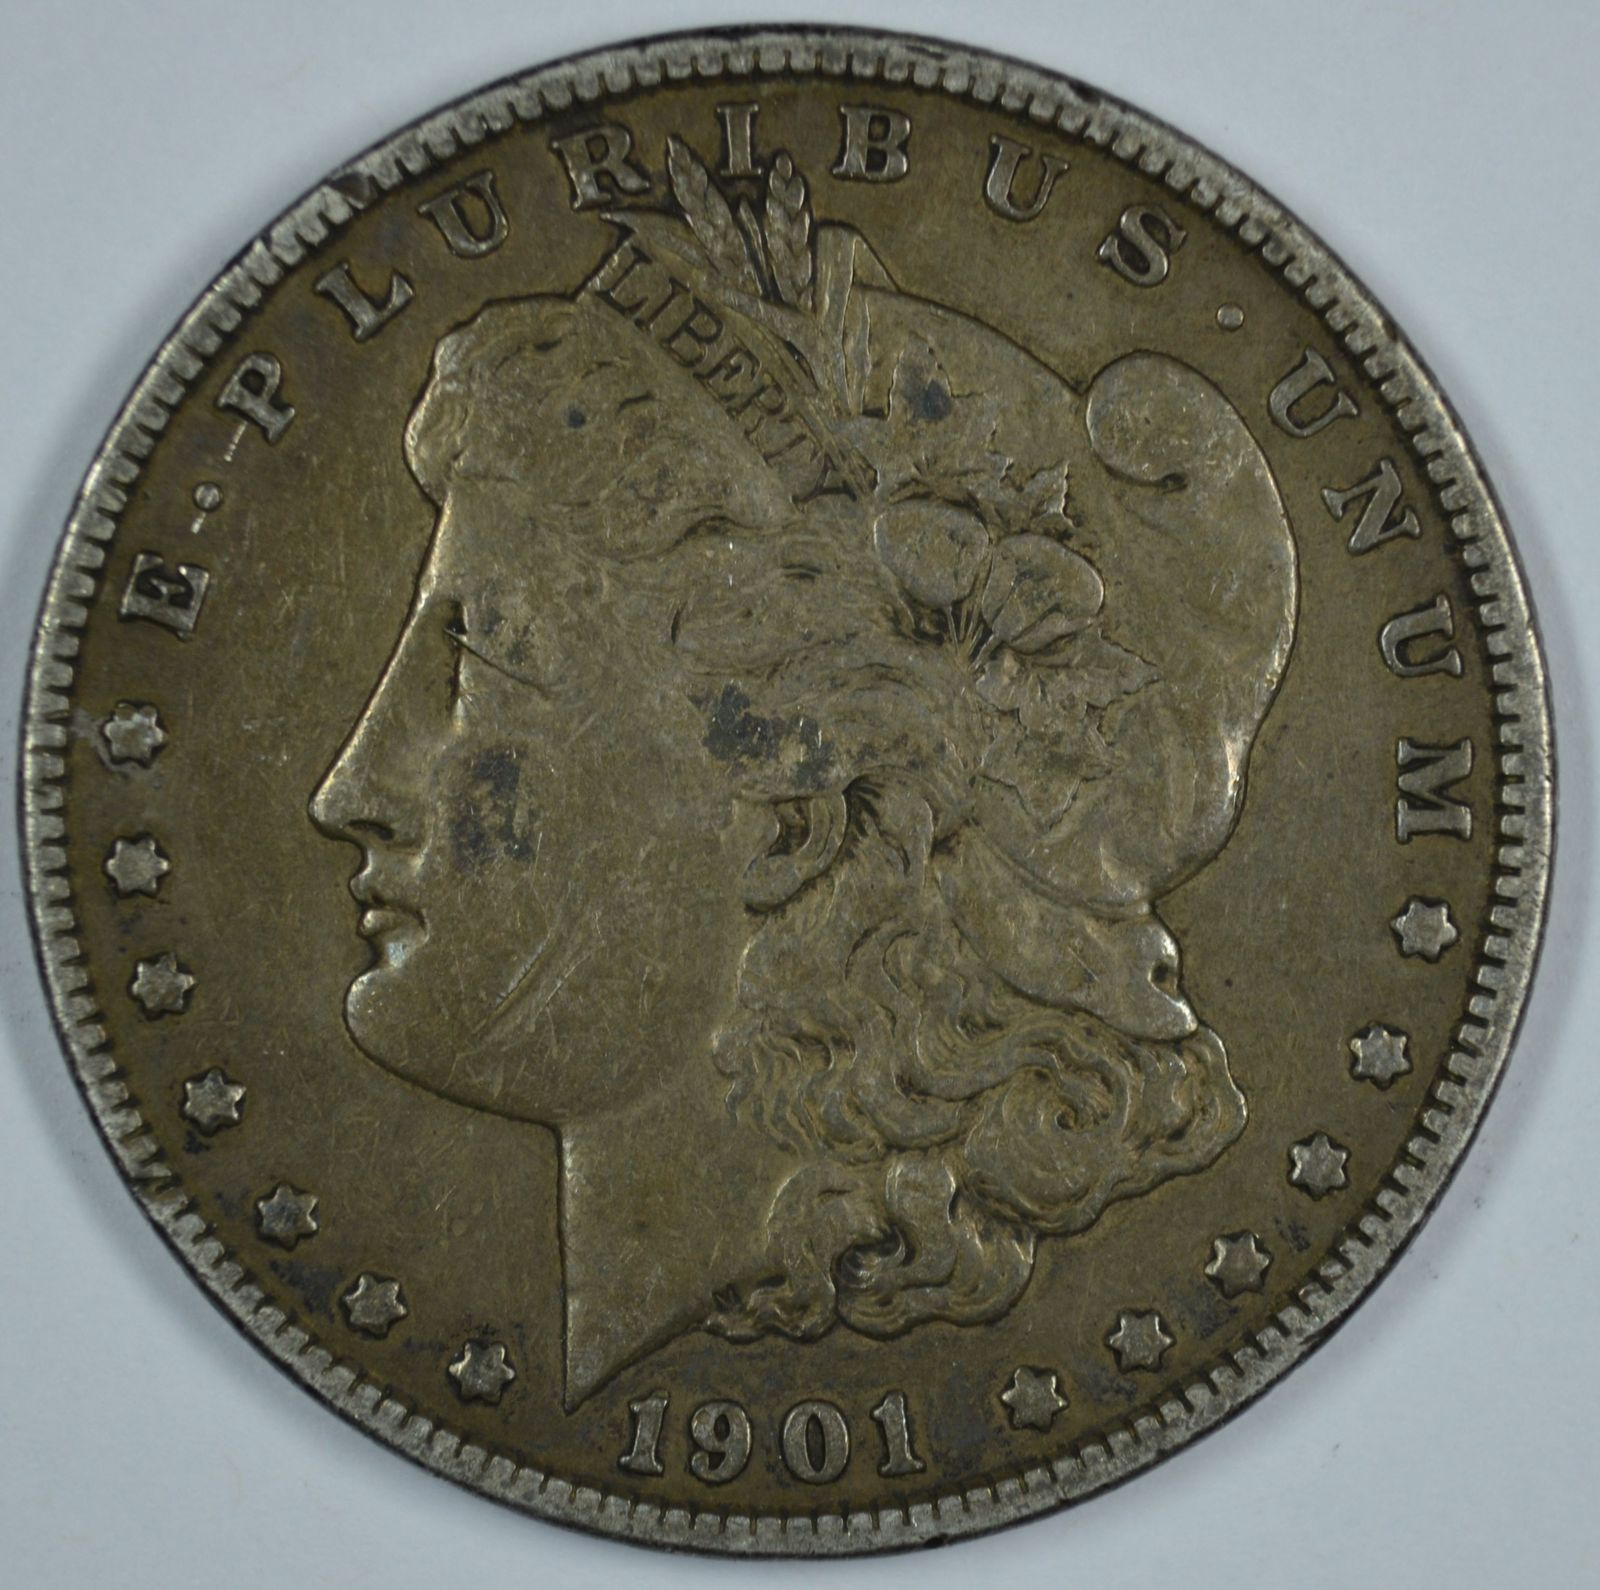 Primary image for 1901 P Morgan circulated silver dollar F details